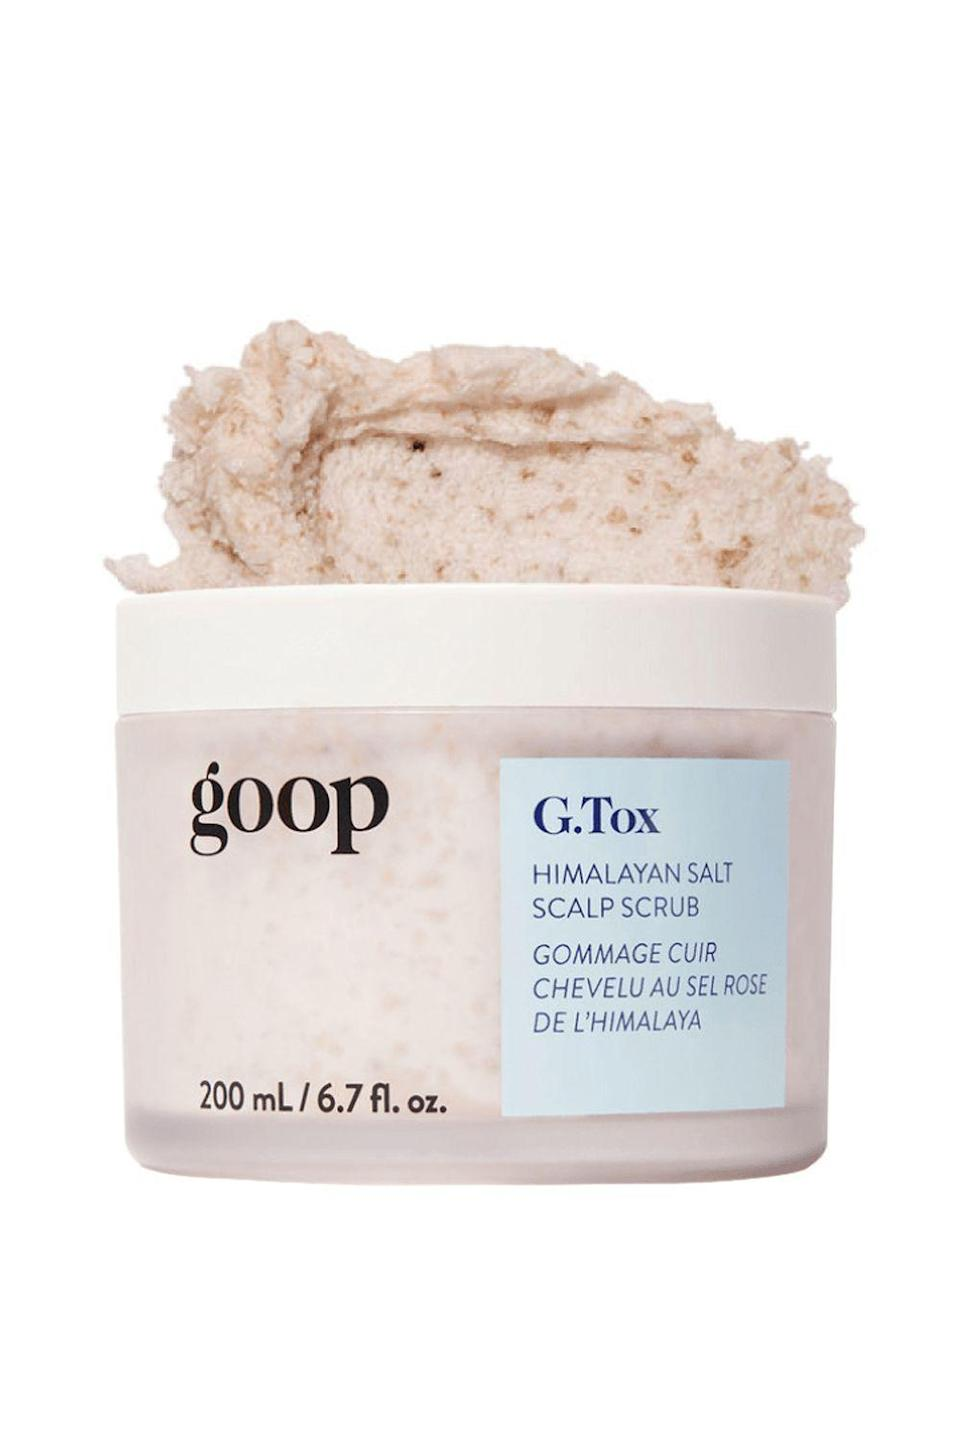 """<p><strong>Goop</strong></p><p>credobeauty.com</p><p><strong>$42.00</strong></p><p><a href=""""https://go.redirectingat.com?id=74968X1596630&url=https%3A%2F%2Fcredobeauty.com%2Fproducts%2Fg-tox-himalayan-salt-scalp-scrub-shampoo&sref=https%3A%2F%2Fwww.cosmopolitan.com%2Fstyle-beauty%2Fbeauty%2Fg33473200%2Fbest-organic-hair-products%2F"""" rel=""""nofollow noopener"""" target=""""_blank"""" data-ylk=""""slk:Shop Now"""" class=""""link rapid-noclick-resp"""">Shop Now</a></p><p>Once or twice a week, <strong>give your <a href=""""https://www.cosmopolitan.com/style-beauty/beauty/g30896457/dry-scalp-treatment-products/"""" rel=""""nofollow noopener"""" target=""""_blank"""" data-ylk=""""slk:scalp"""" class=""""link rapid-noclick-resp"""">scalp</a> a deep clean with this organic scrub/shampoo hybrid.</strong> It uses tiny bits of mineral-rich Himalayan pink salt to help exfoliate way any build-up, flakes, or excess oil that gets stuck on your scalp, plus a dose of all-natural moringa and rosehip seed oil to nourish and soften hair.</p>"""